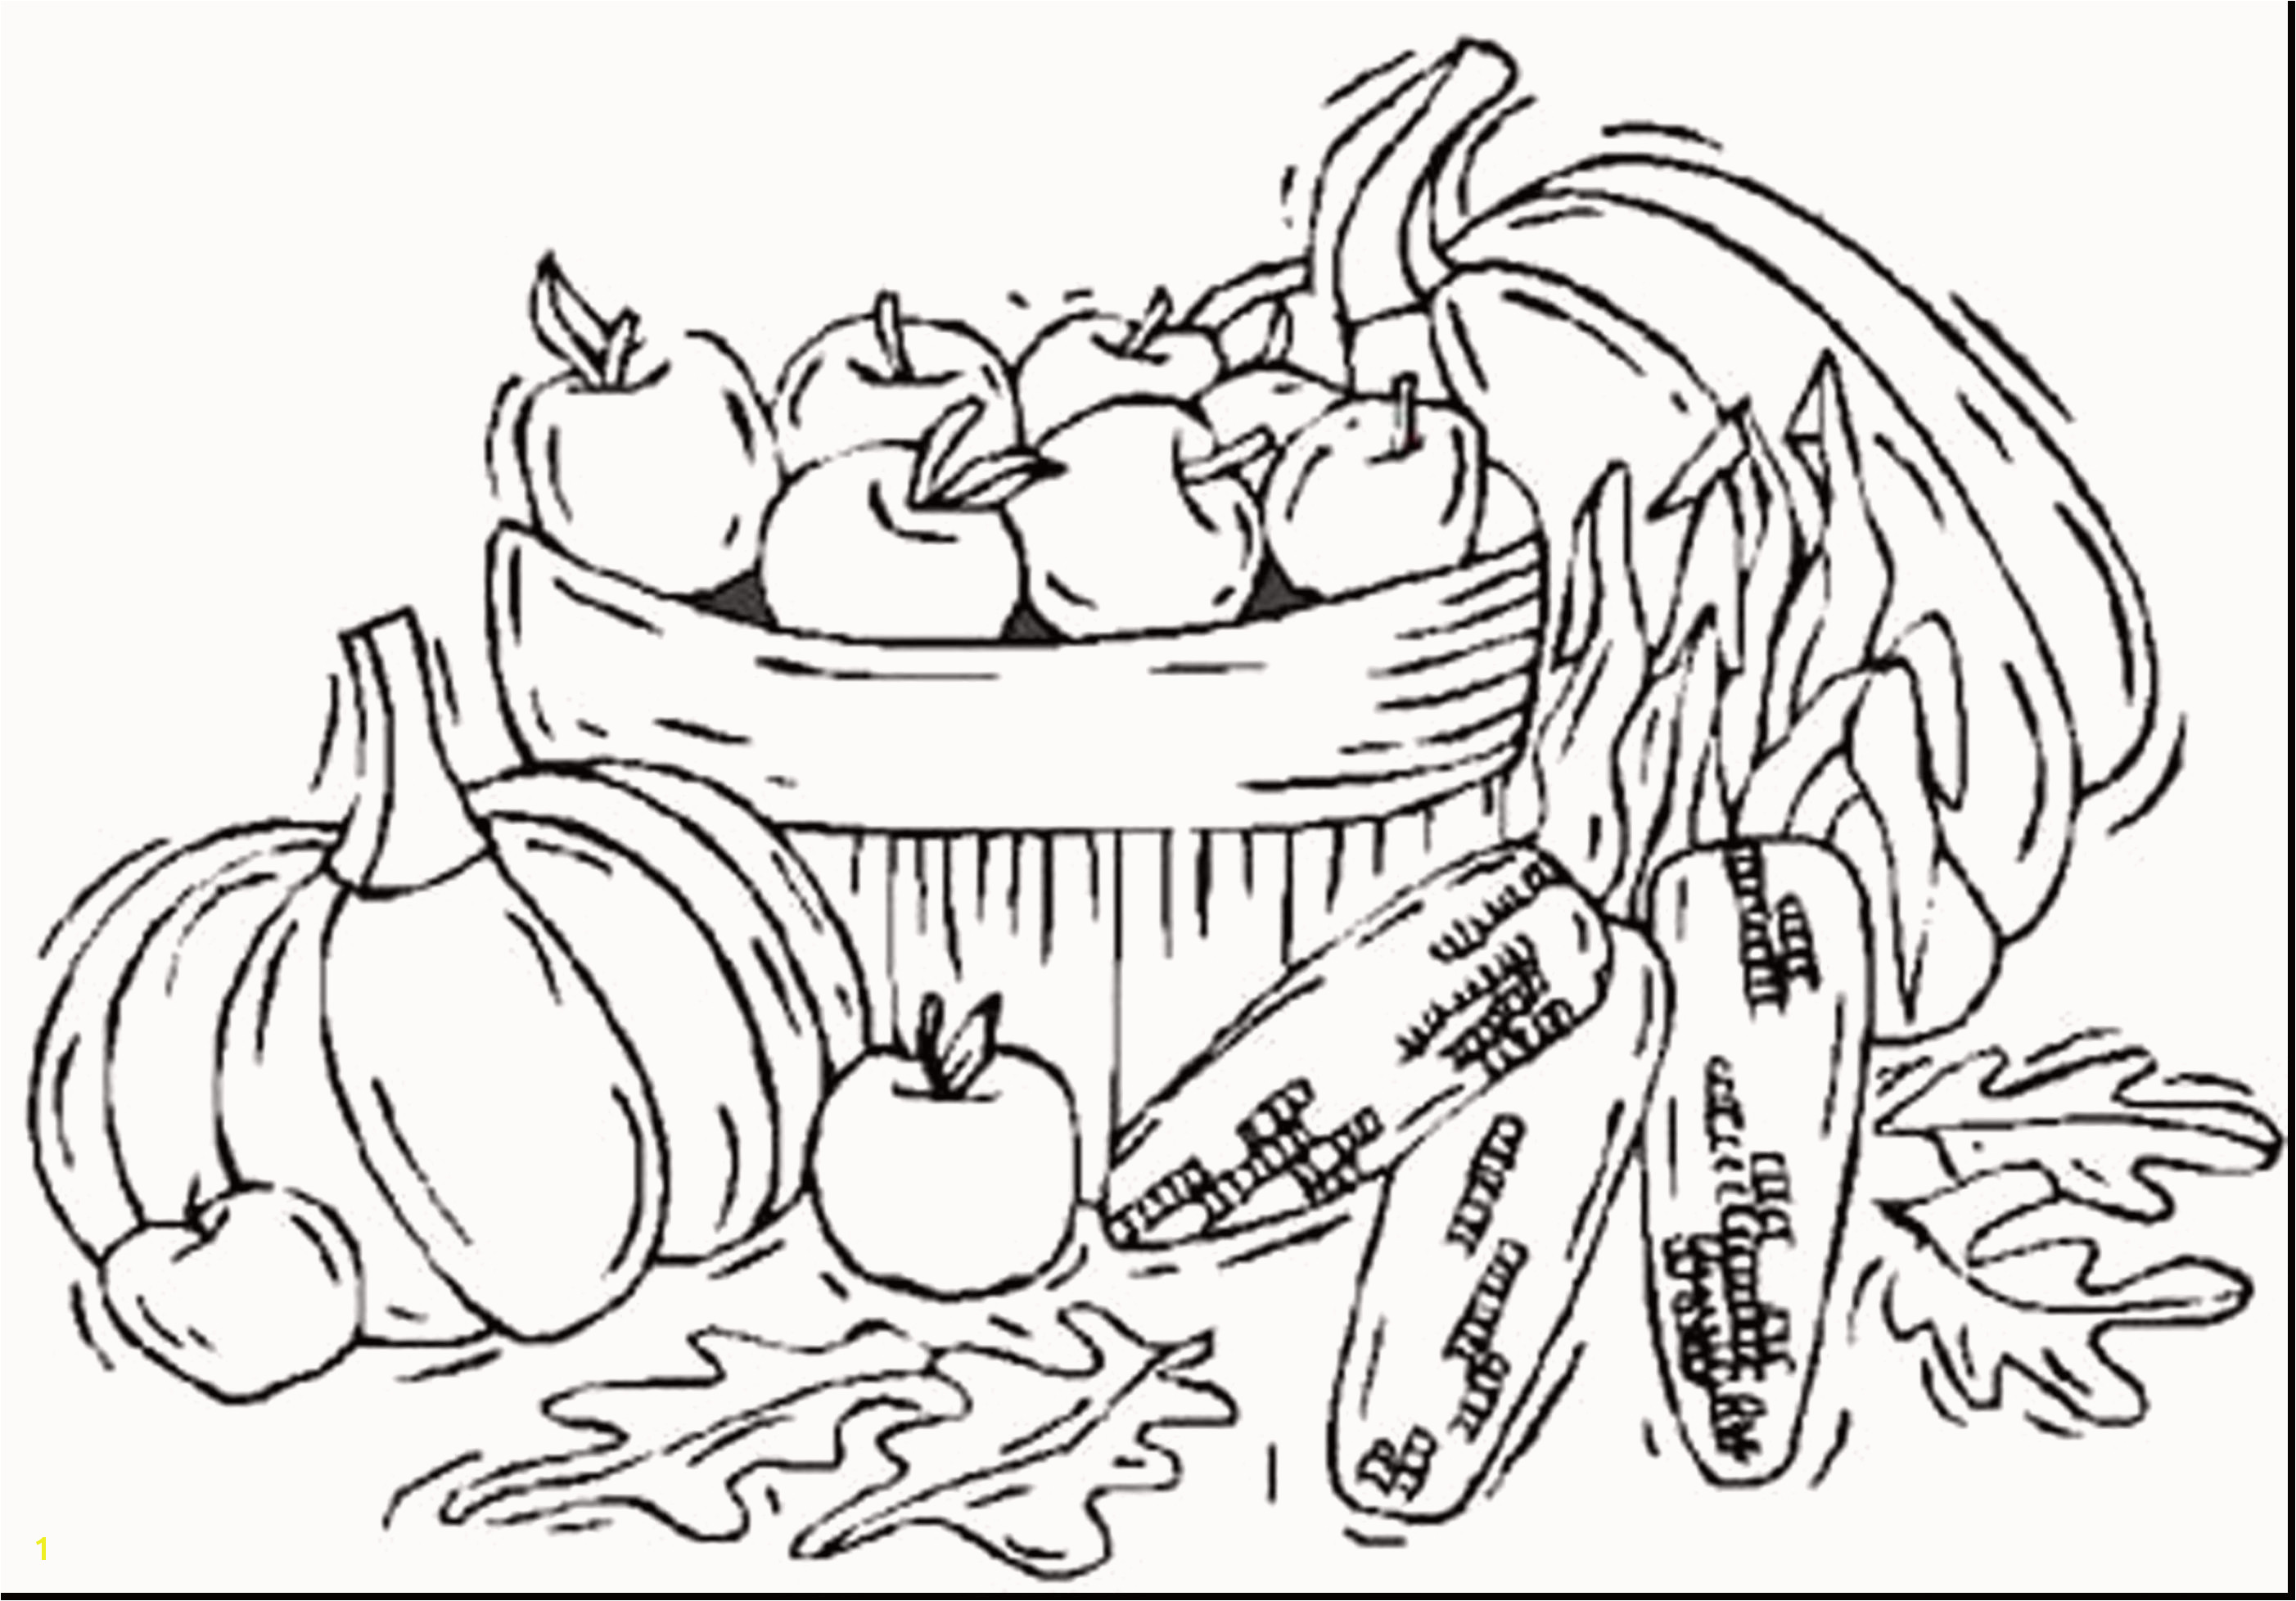 Fall Coloring Pages for Adults to Print Thank You Coloring Pages Gallery thephotosync